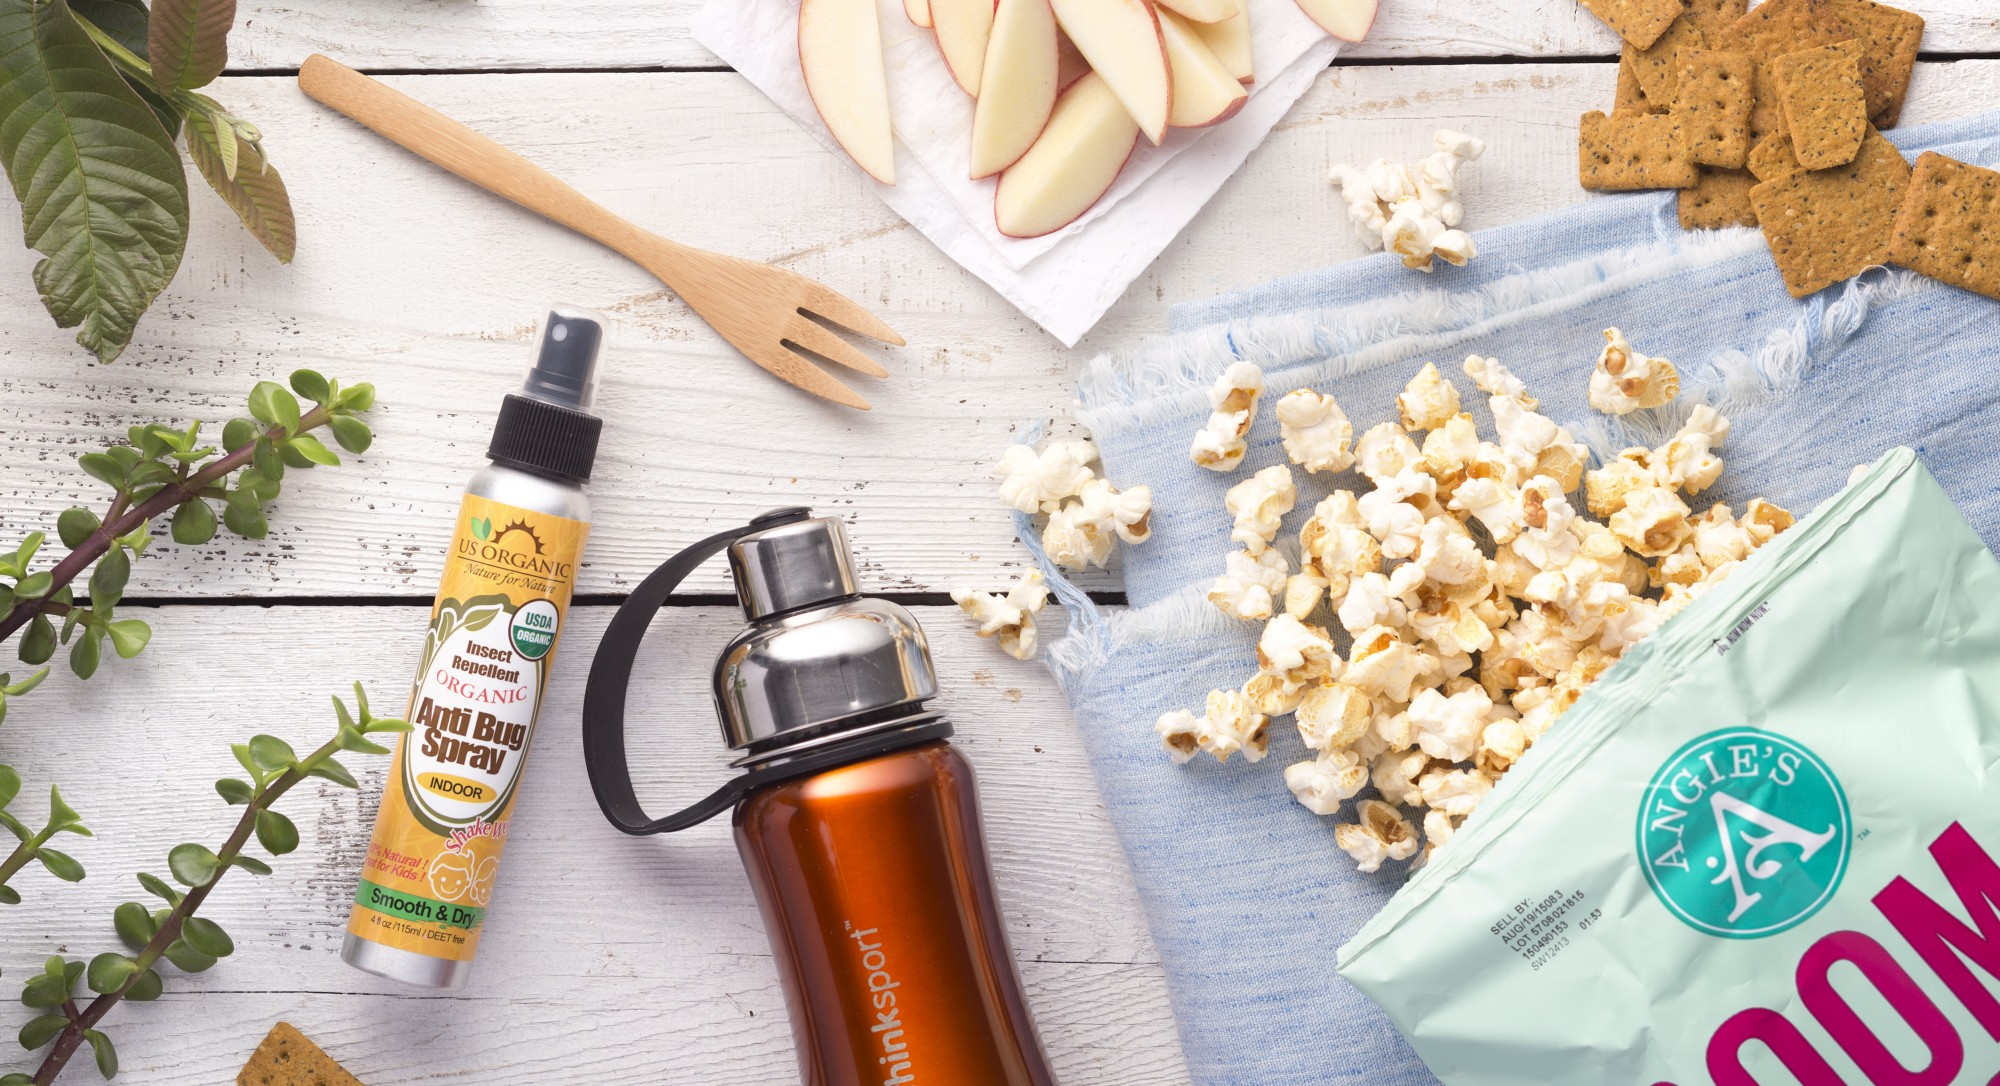 Checklist: 9 Must-Haves for a Perfect Picnic